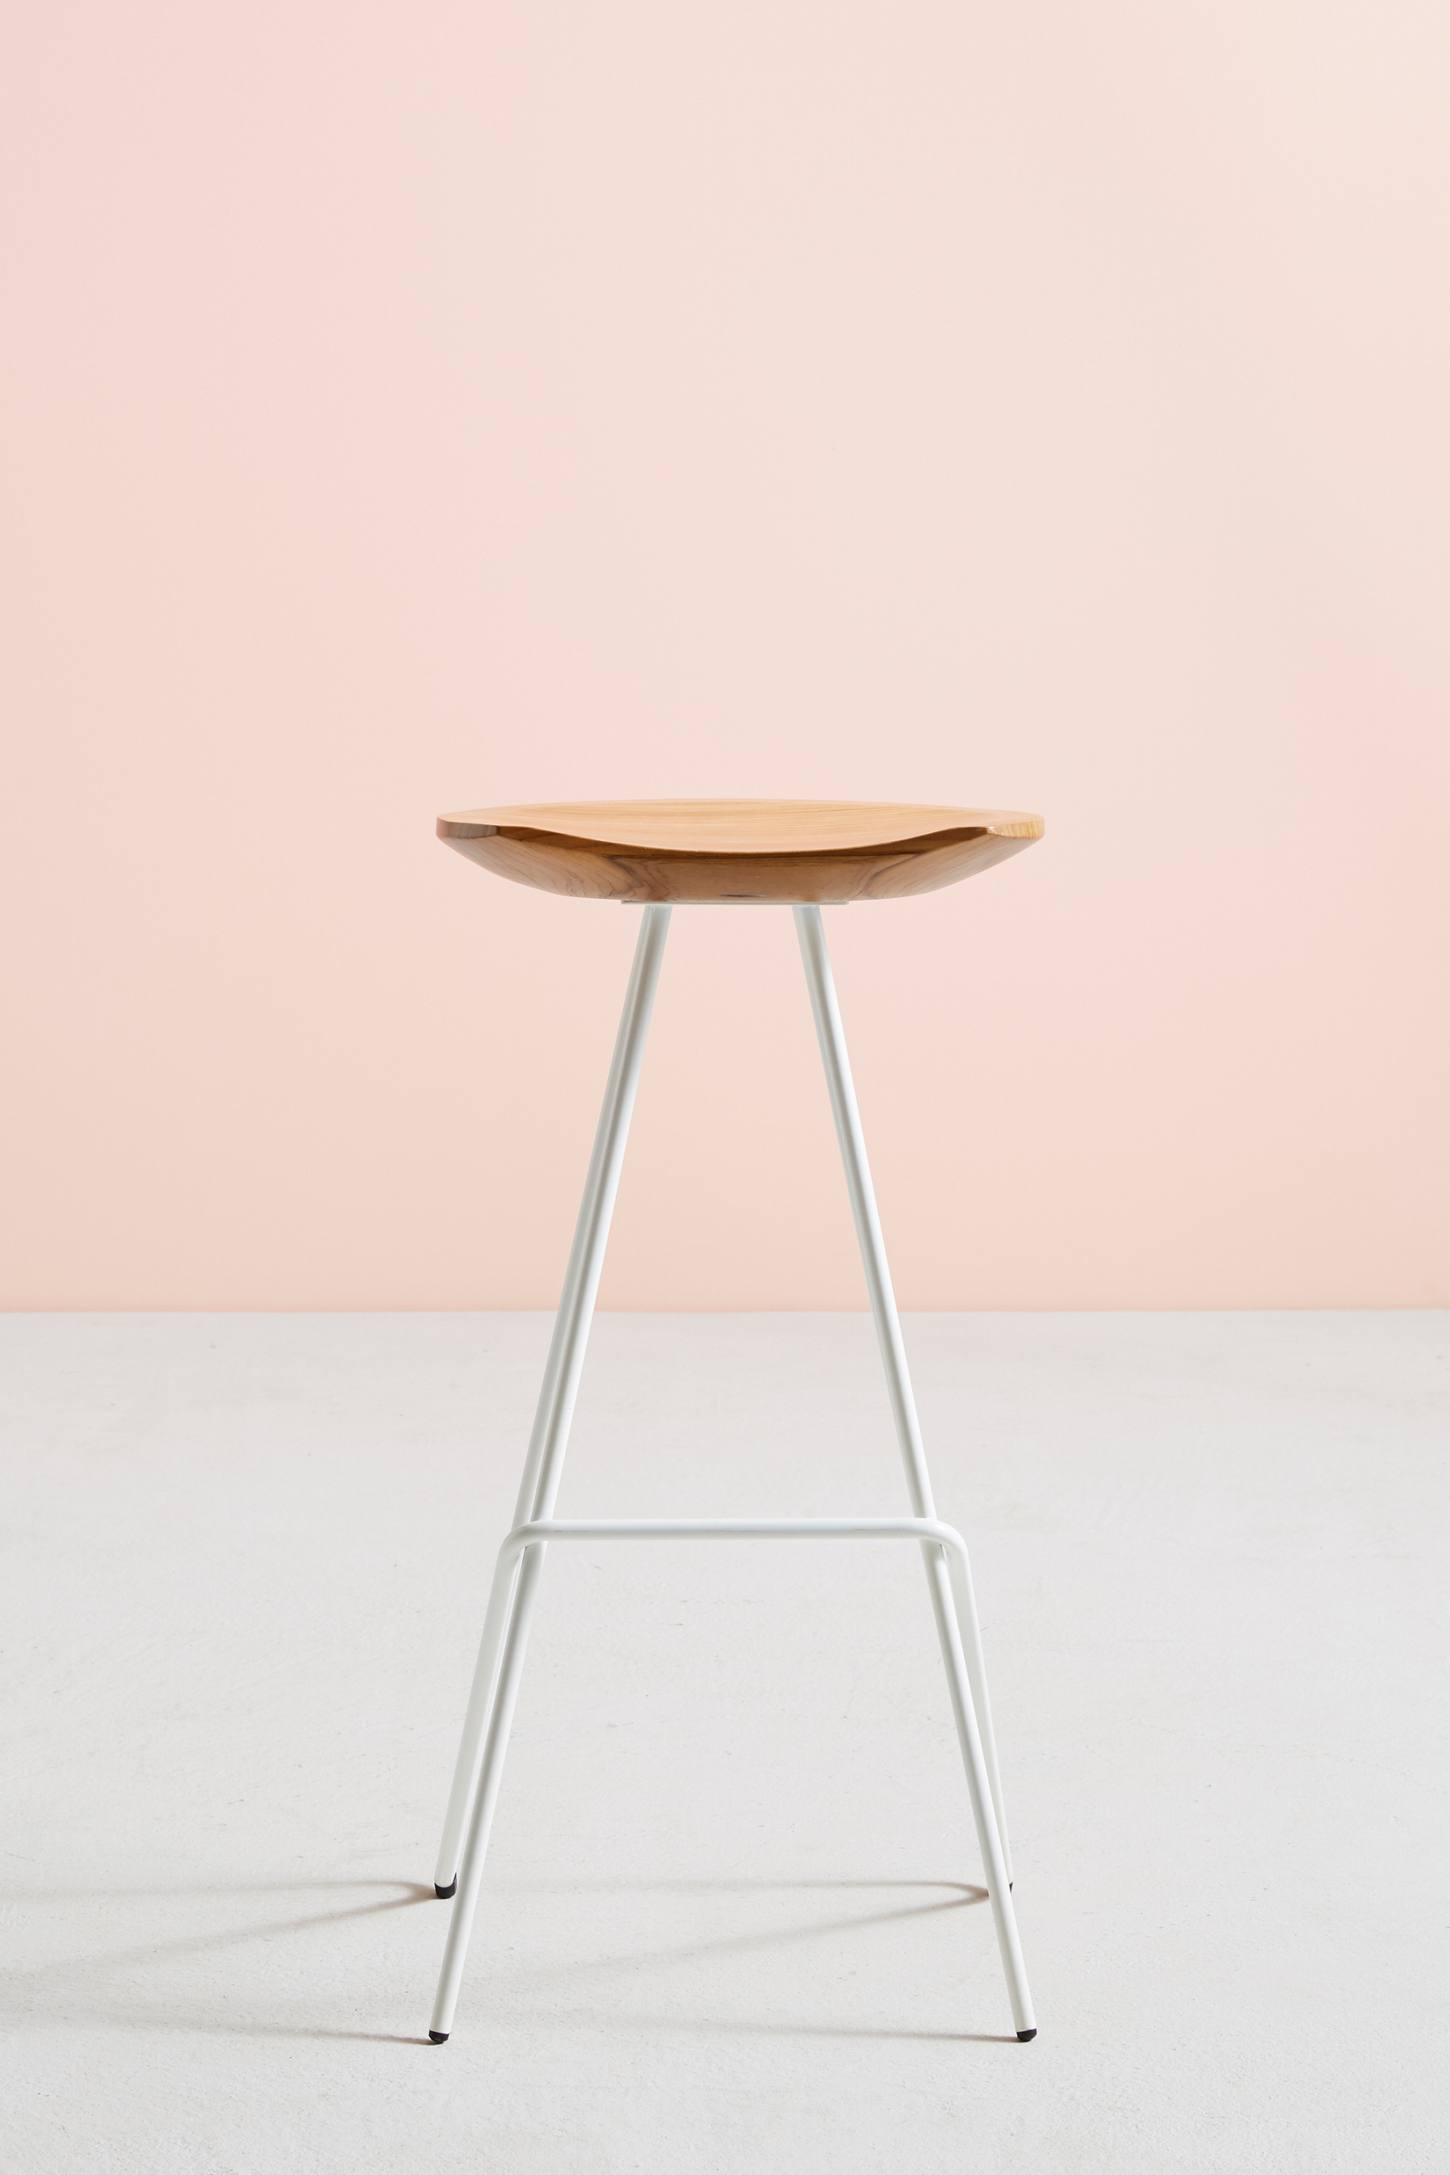 Slide View: 2: Perch Stool